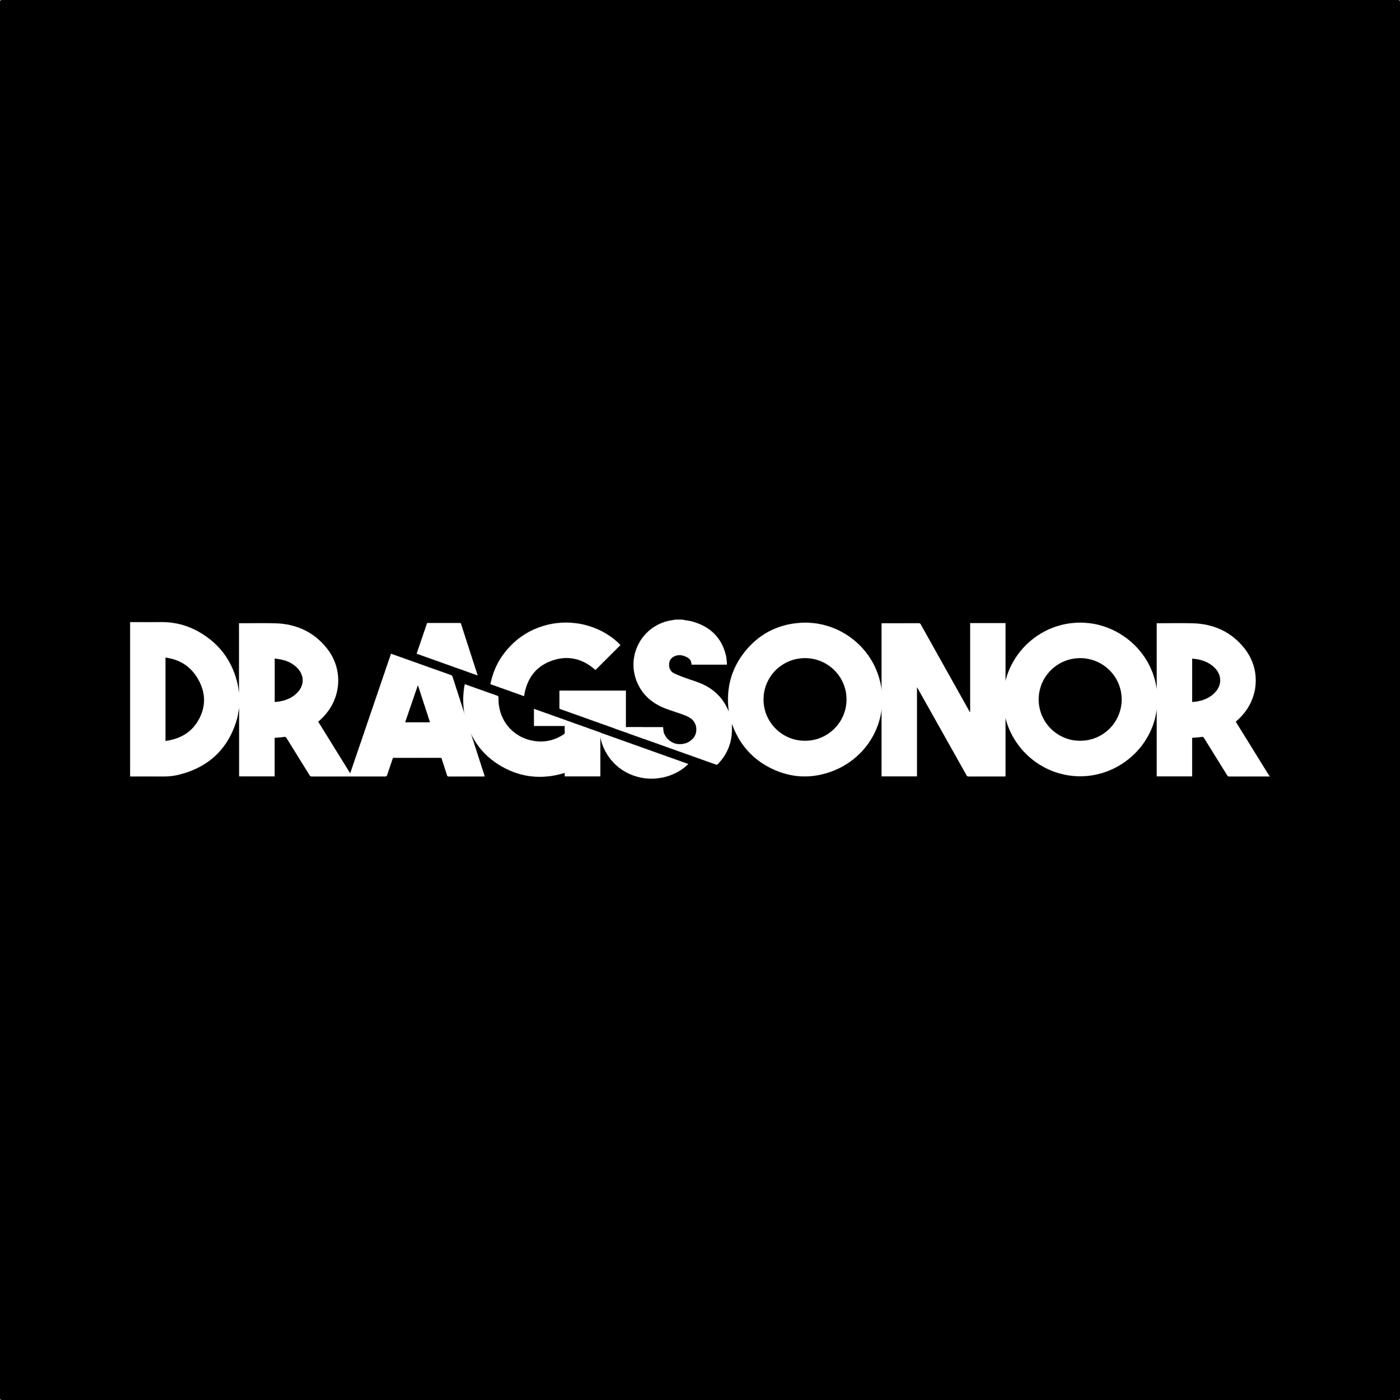 Dragsonor Podcast